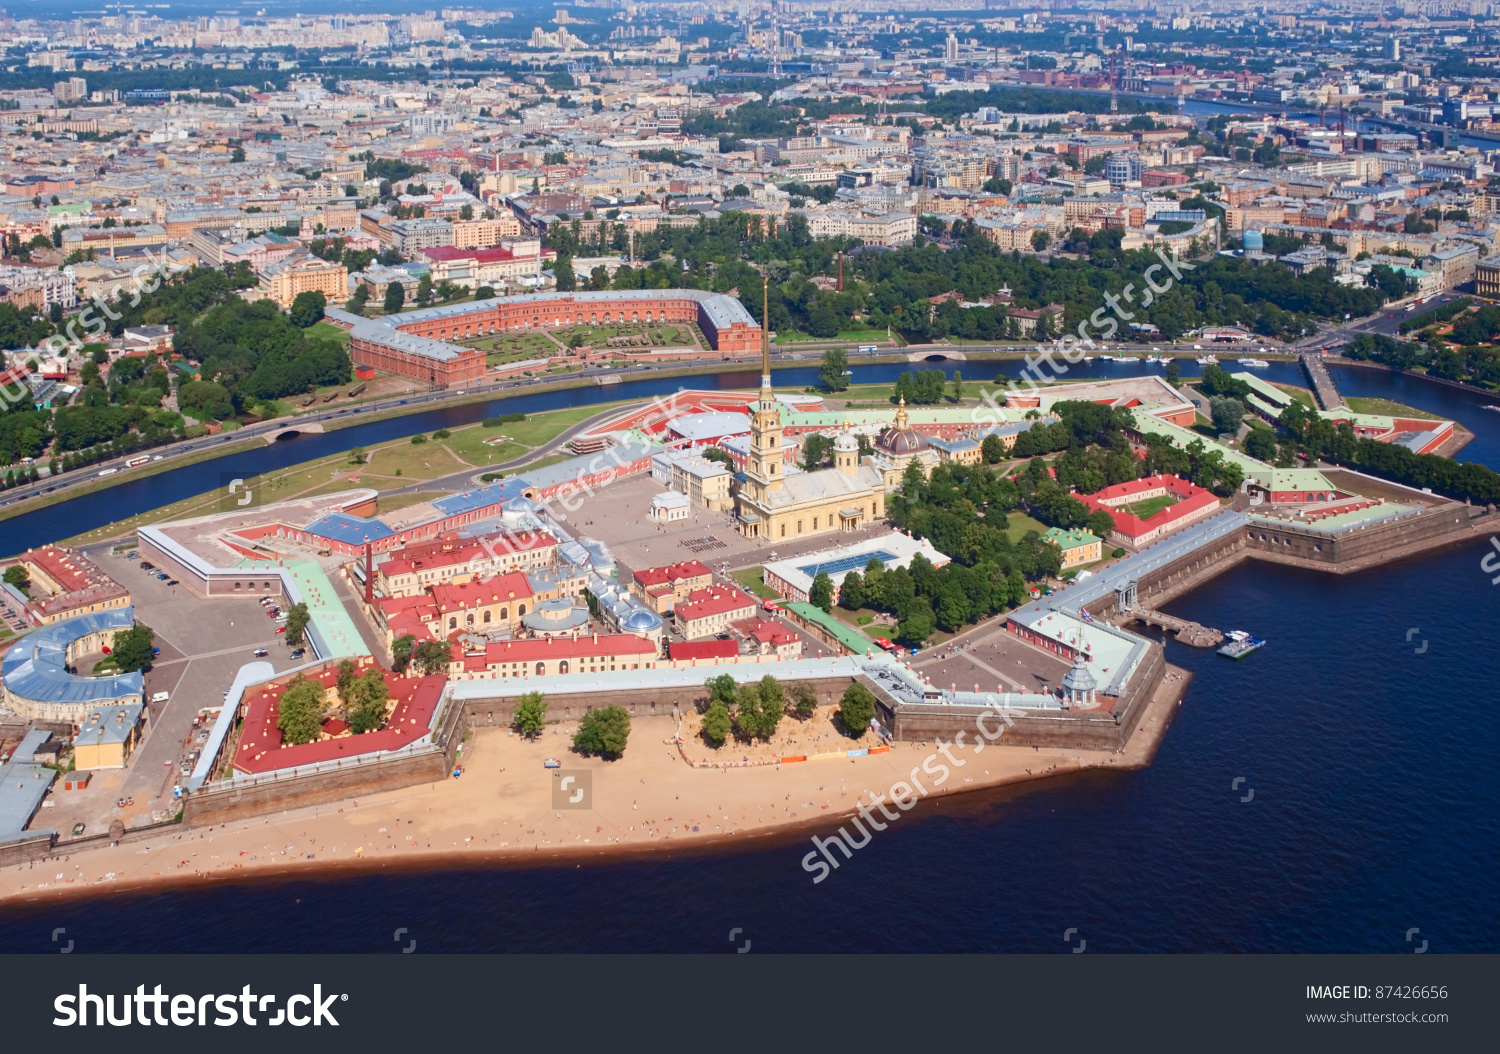 Peter And Paul Fortress In Saint Petersburg, Russia Stock Photo.